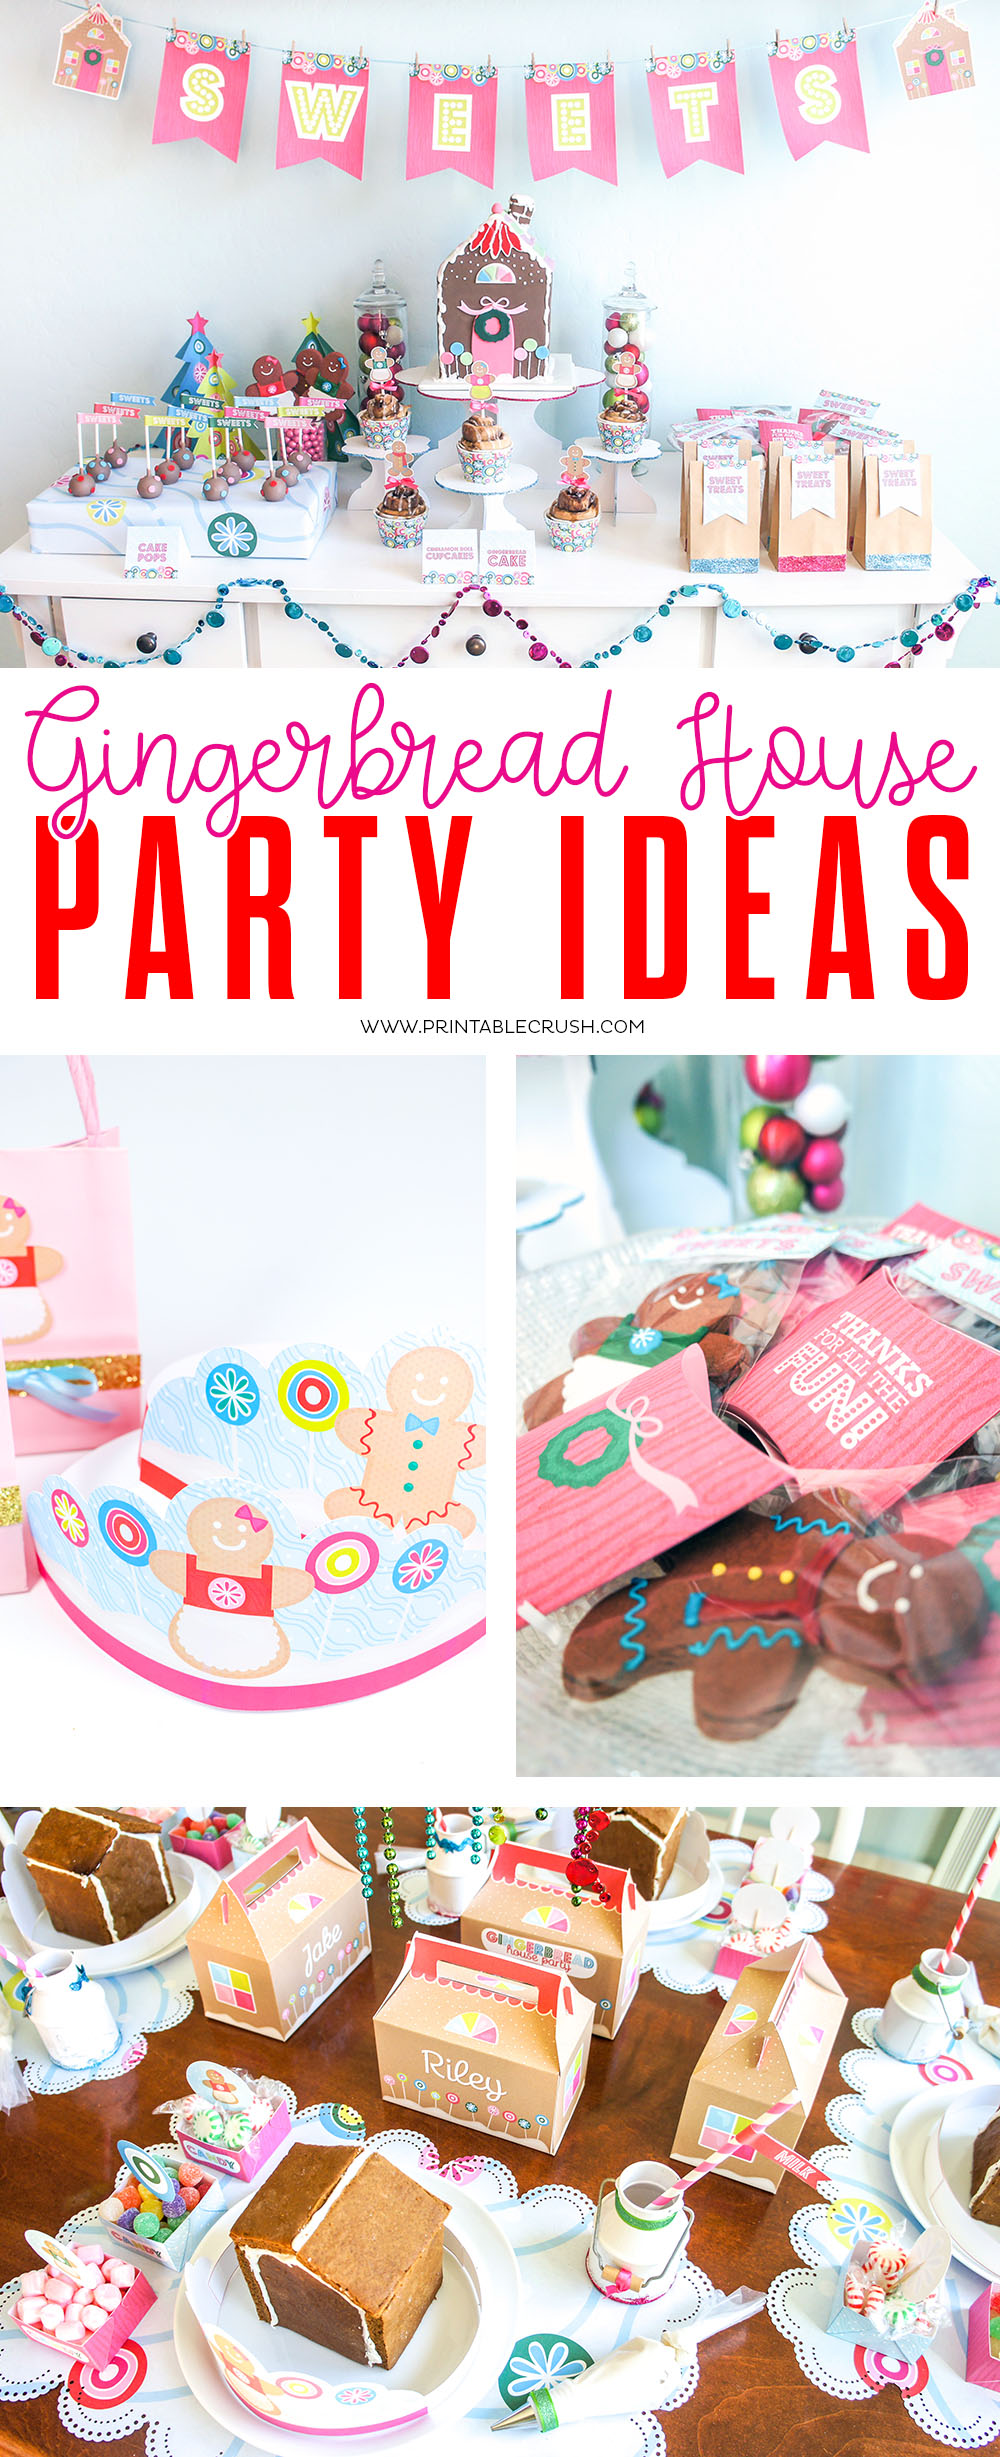 Your kids will love these Gingerbread House Party Ideas - such a fun holiday party! #gingerbreadhouse #gingerbreadhouseparty #christmasparty #holidayparty #gingerbreadprintables via @printablecrush